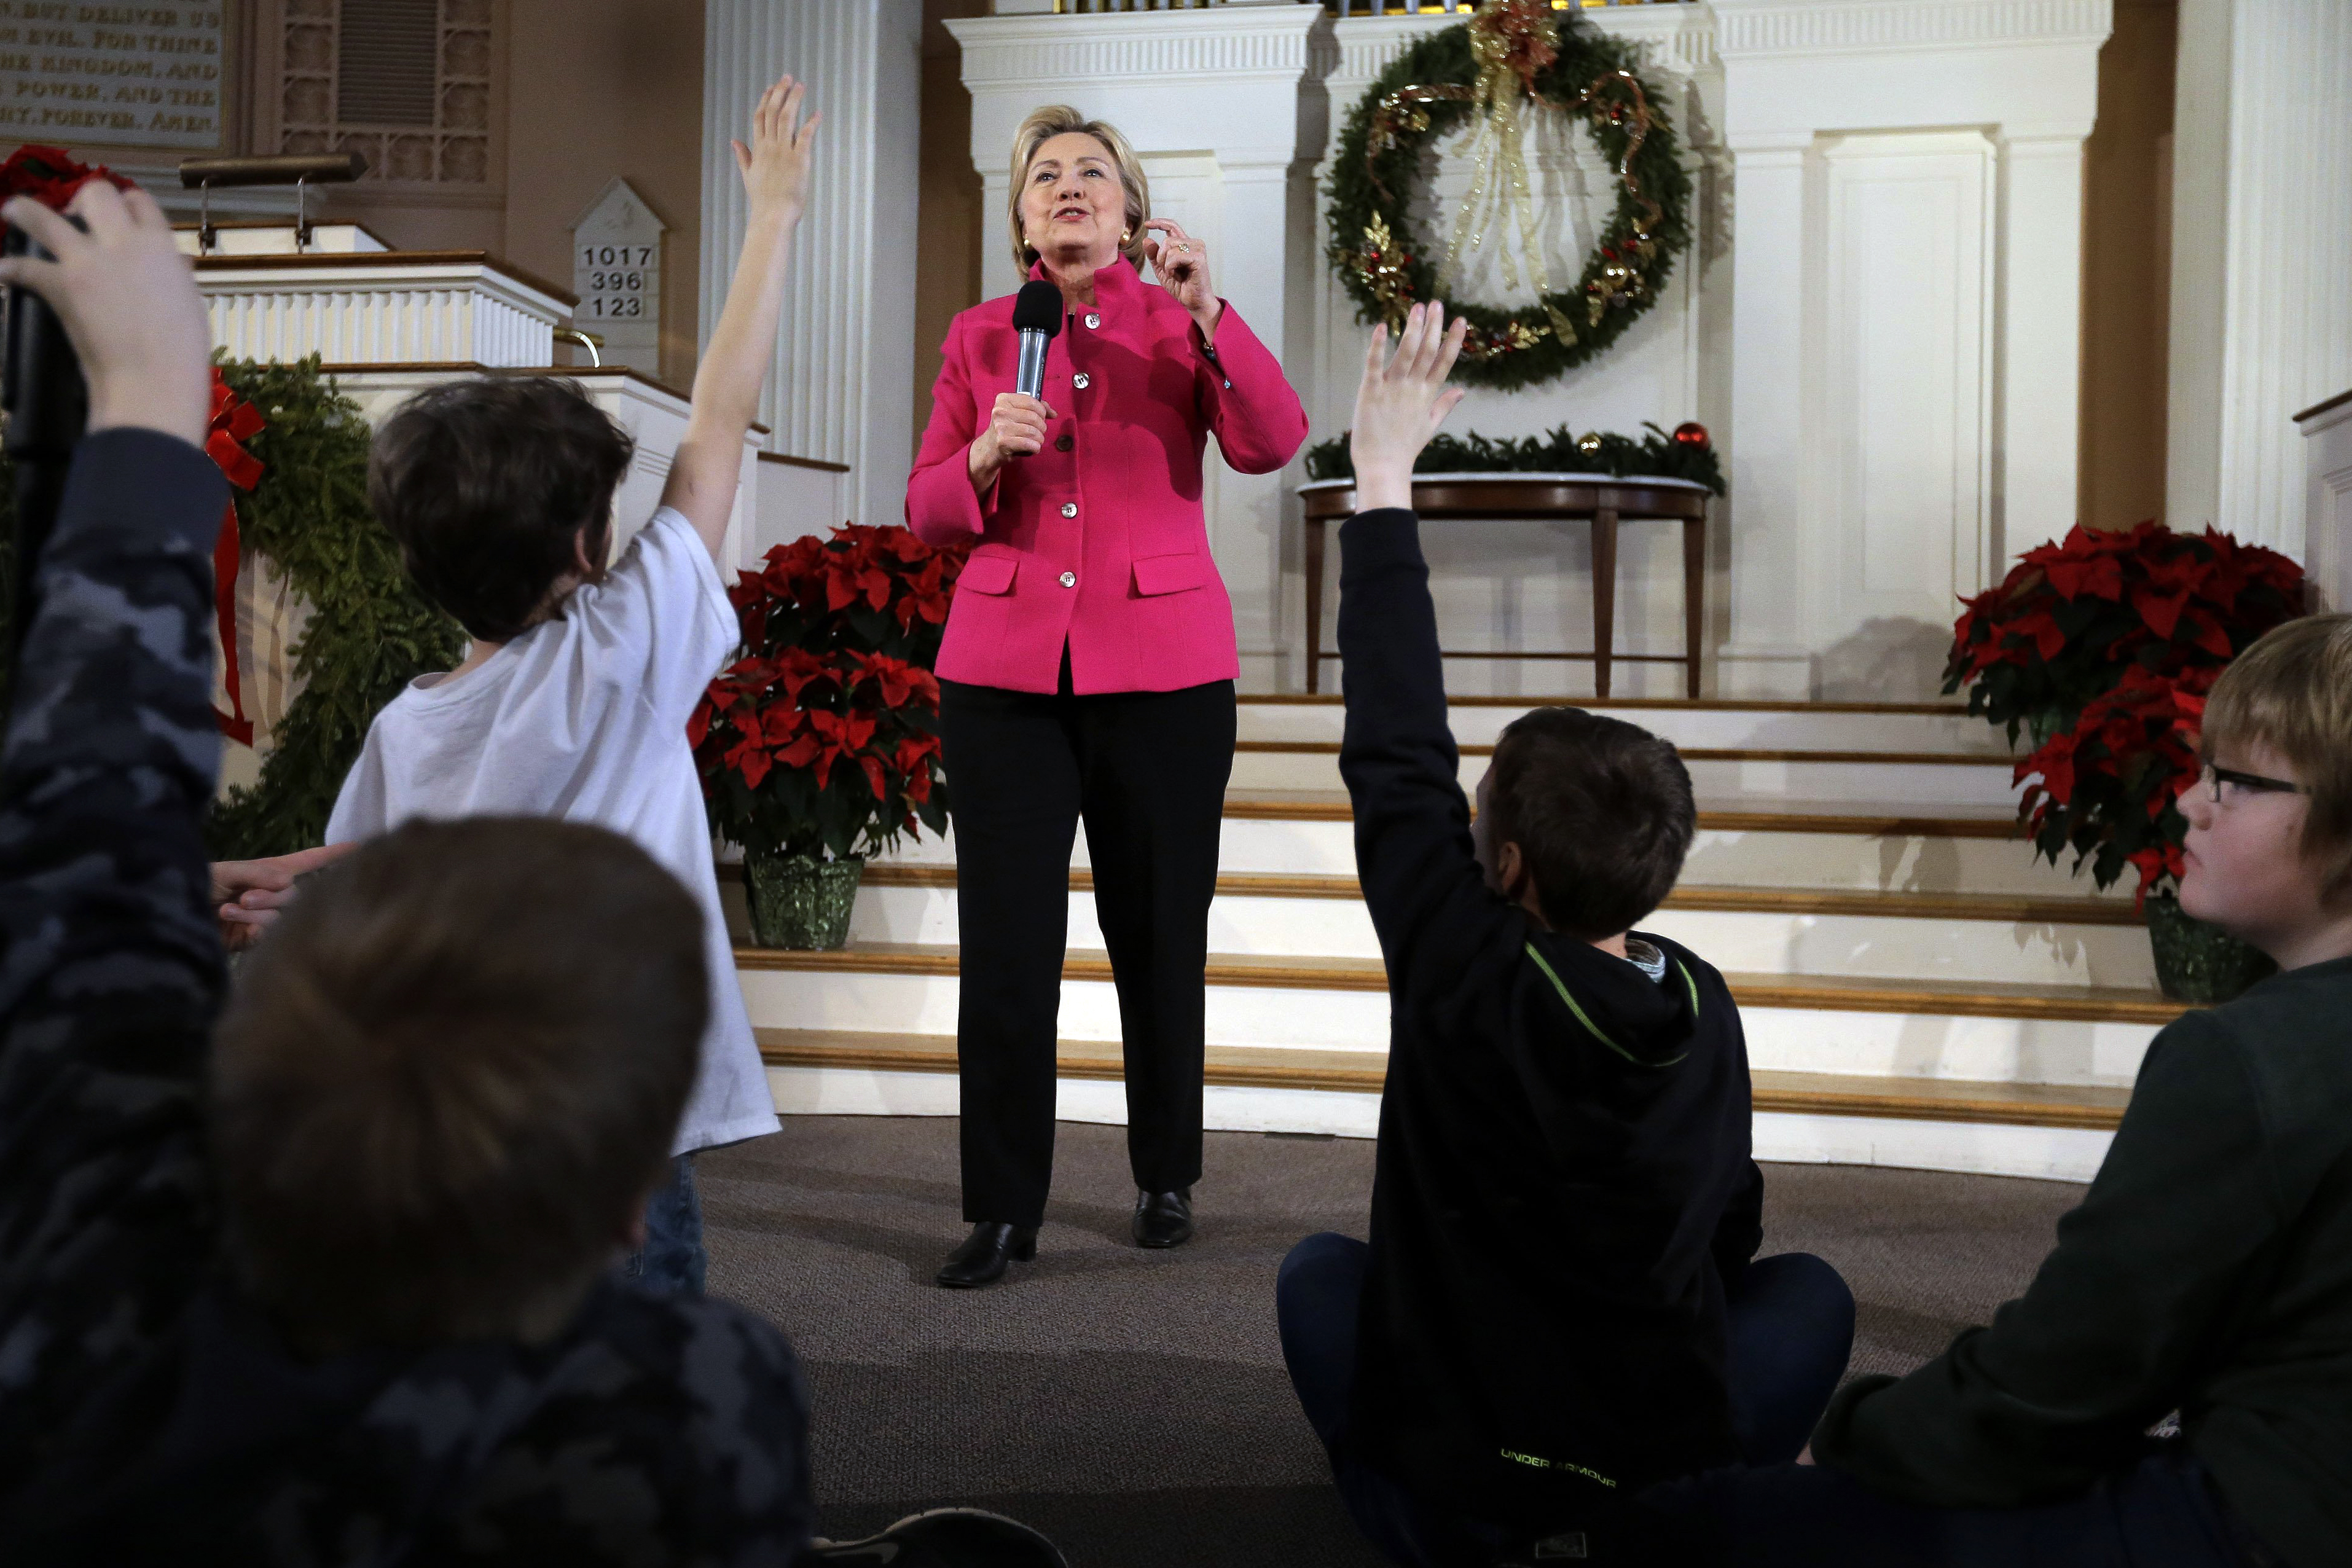 Democratic presidential candidate Hillary Clinton takes questions as children raise their hands during a town hall campaign event, Tuesday, Dec. 29, 2015, at South Church in Portsmouth, N.H.